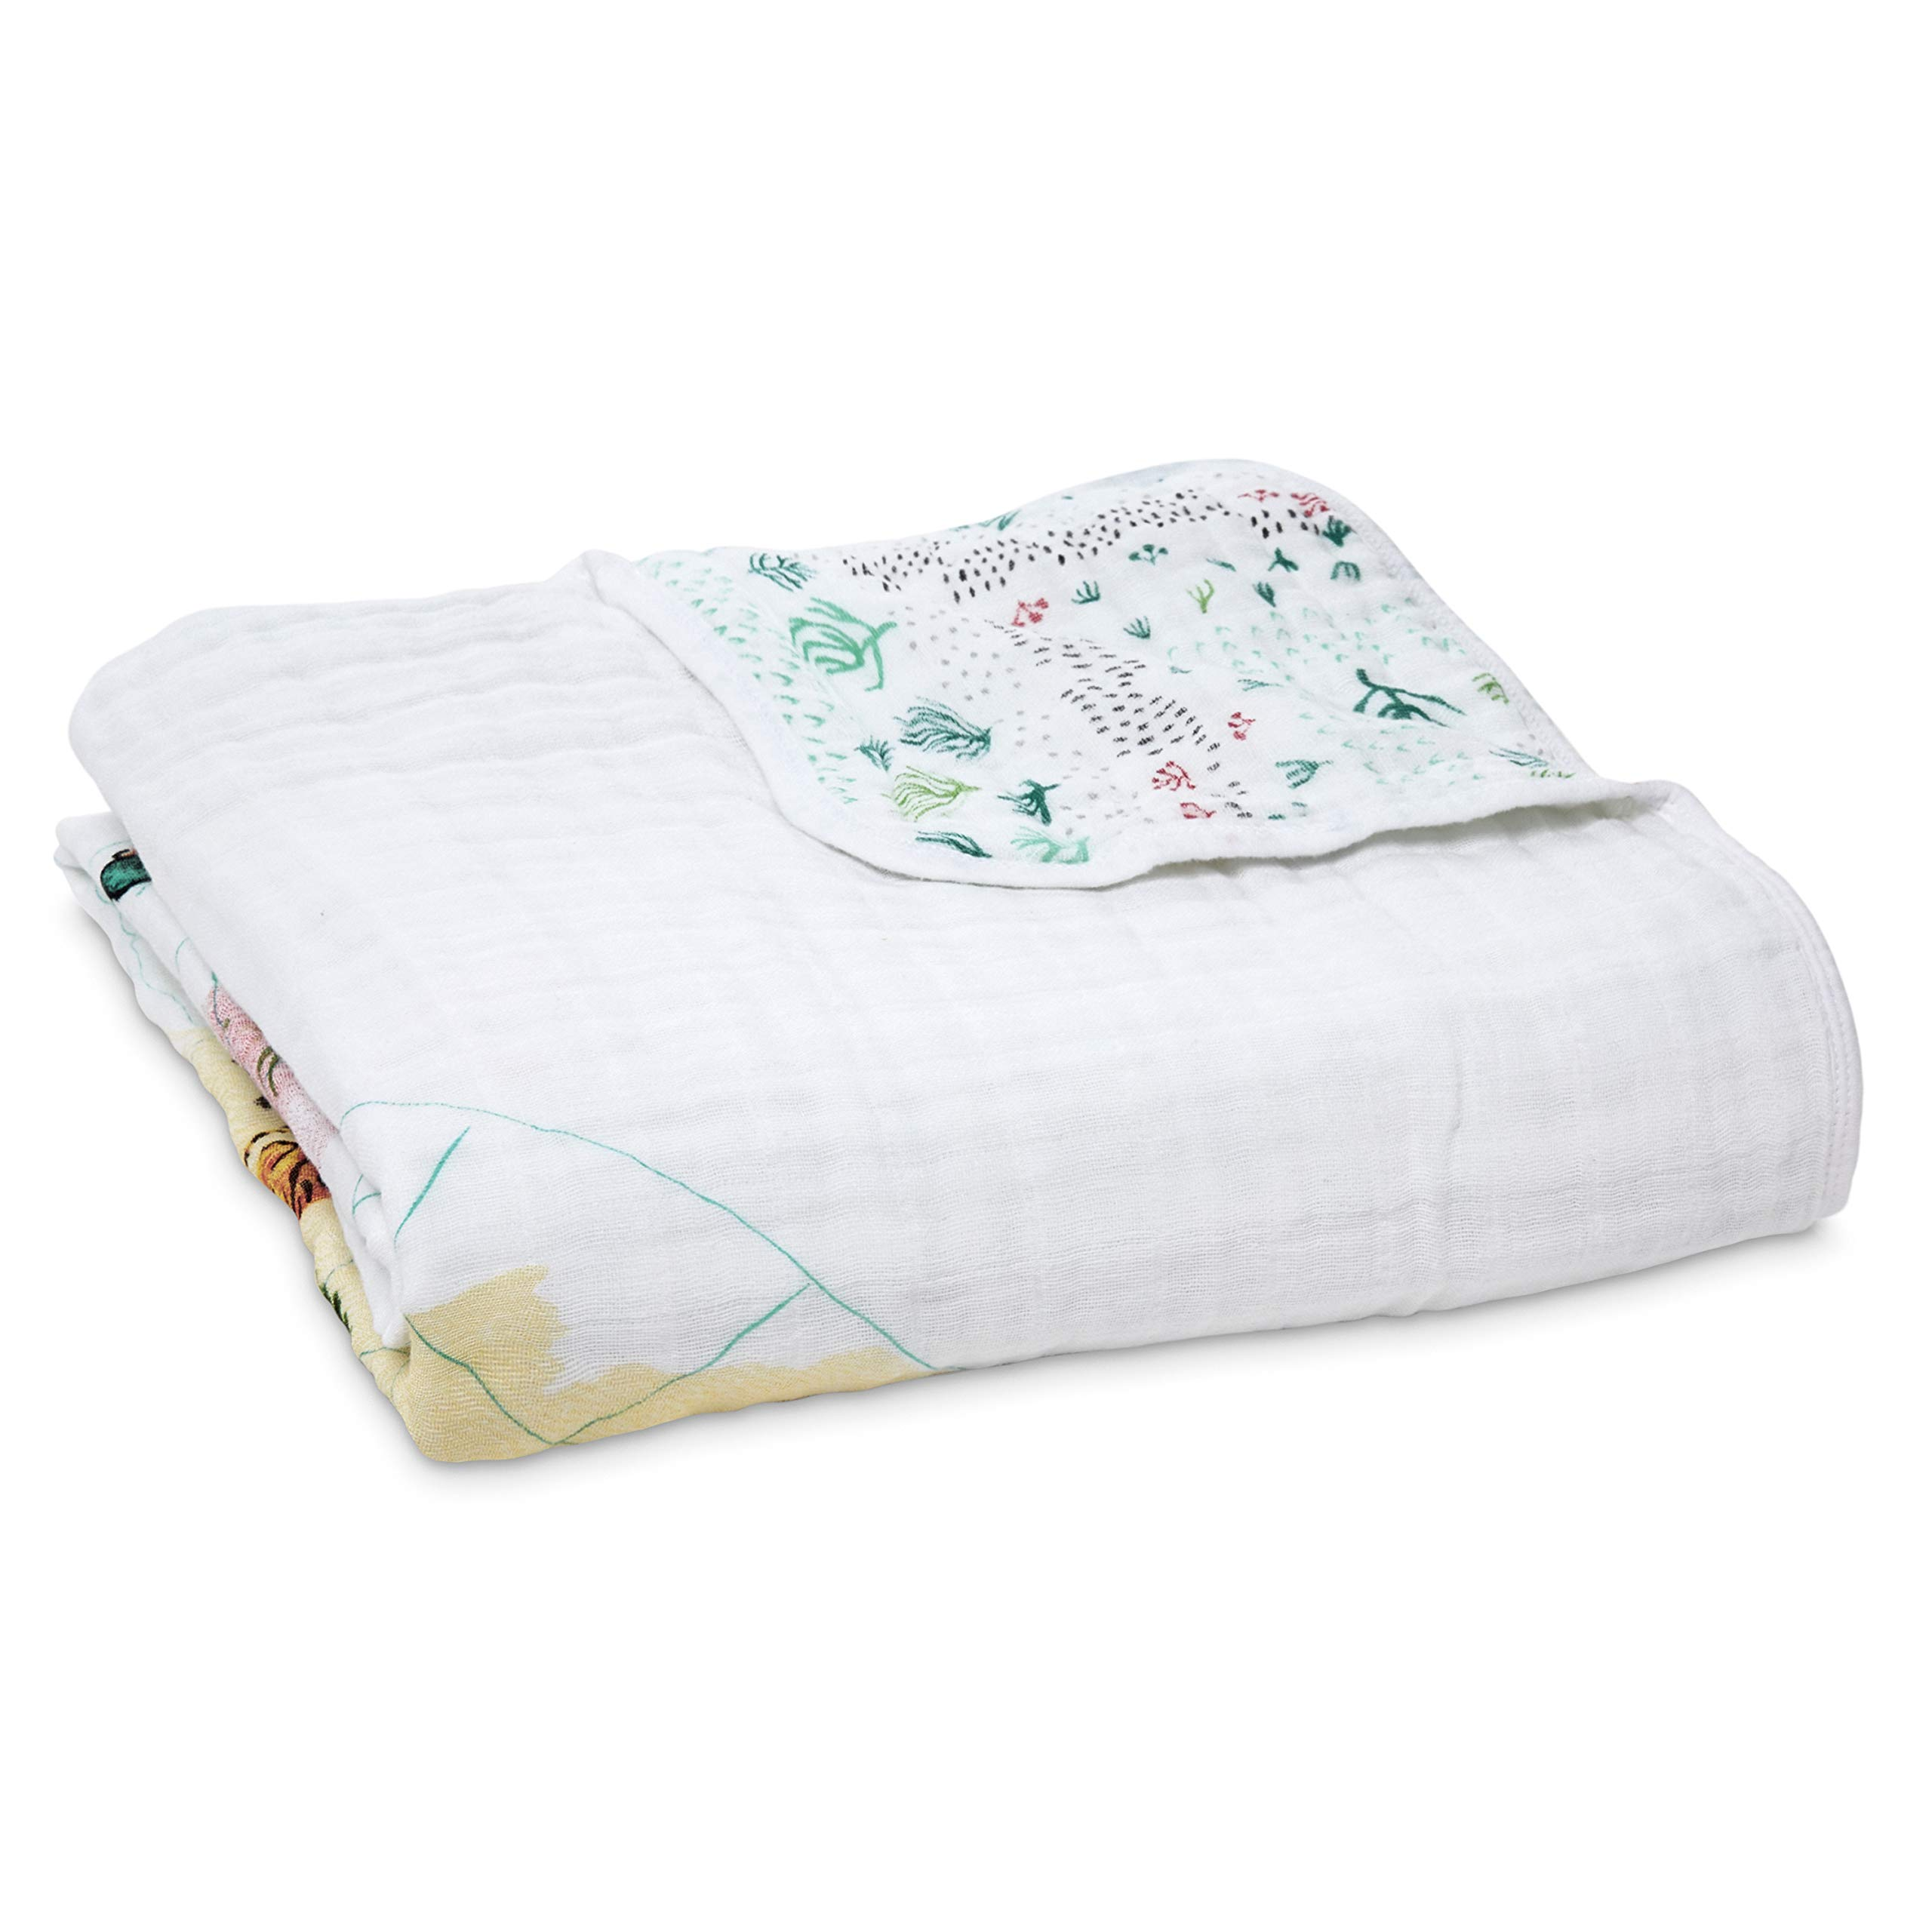 aden + anais Dream Blanket, 100% Cotton Muslin, 4 Layer Lightweight and Breathable, Large 47 X 47 inch, Around The World - Eng. Map